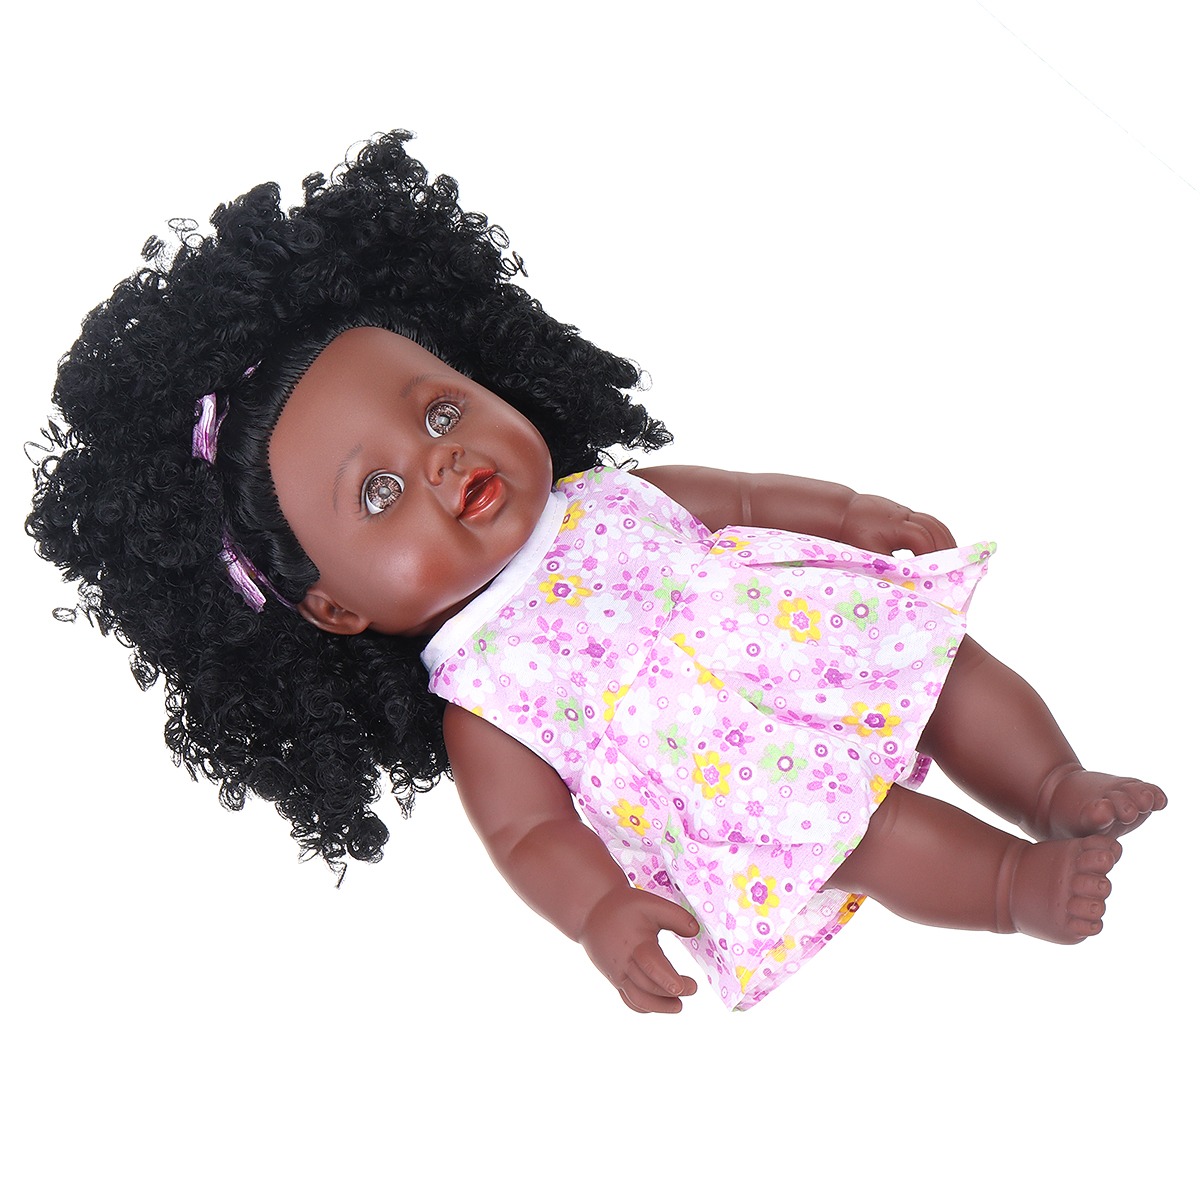 12Inch Simulation Soft Silicone Vinyl PVC Black Baby Fashion Doll Rotate 360° African Girl Perfect Reborn Doll Toy for Birthday Gift - Photo: 7